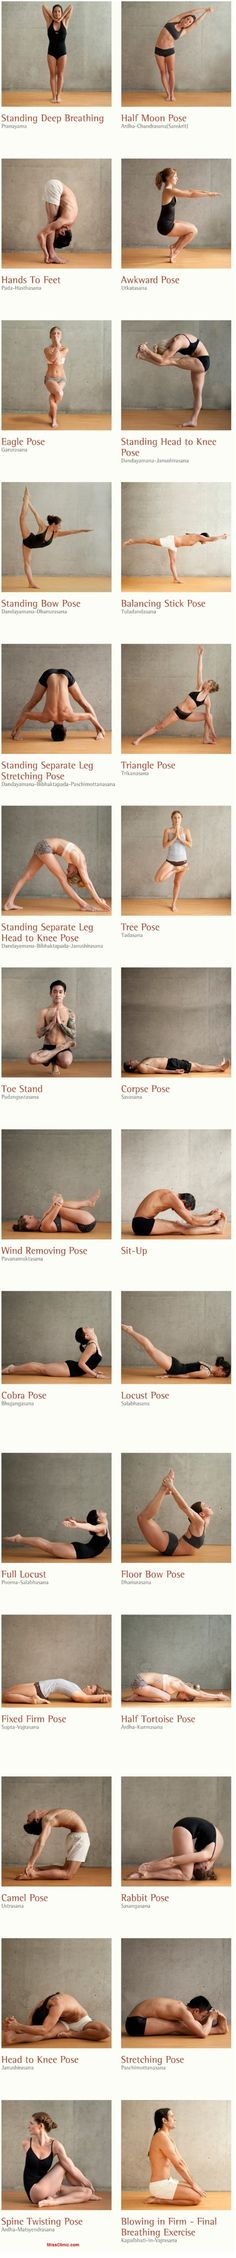 Bikram yoga - the 26 postures